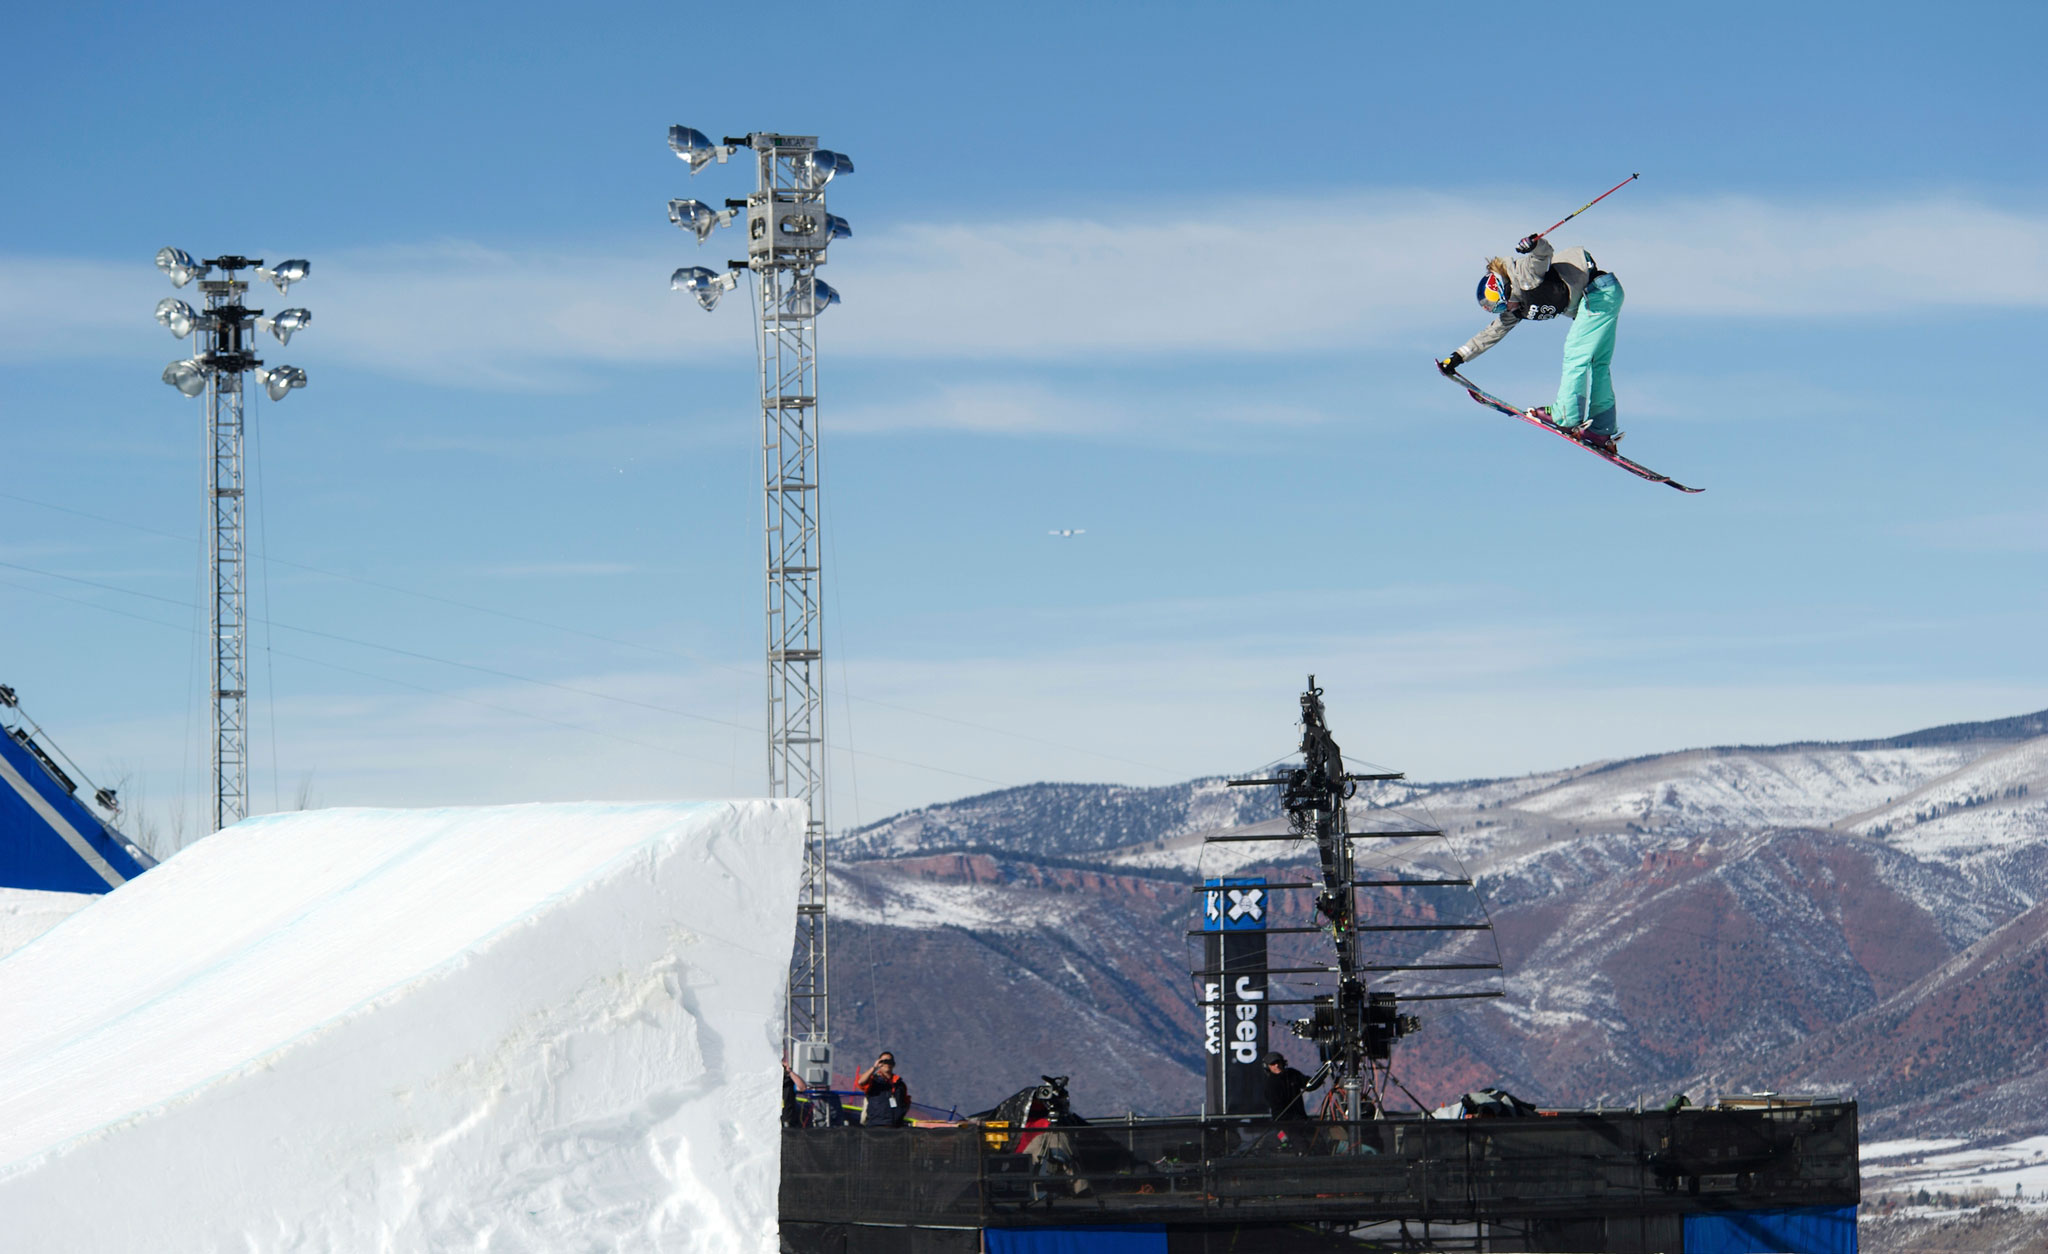 Grete Eliassen last competed at the X Games in 2011.